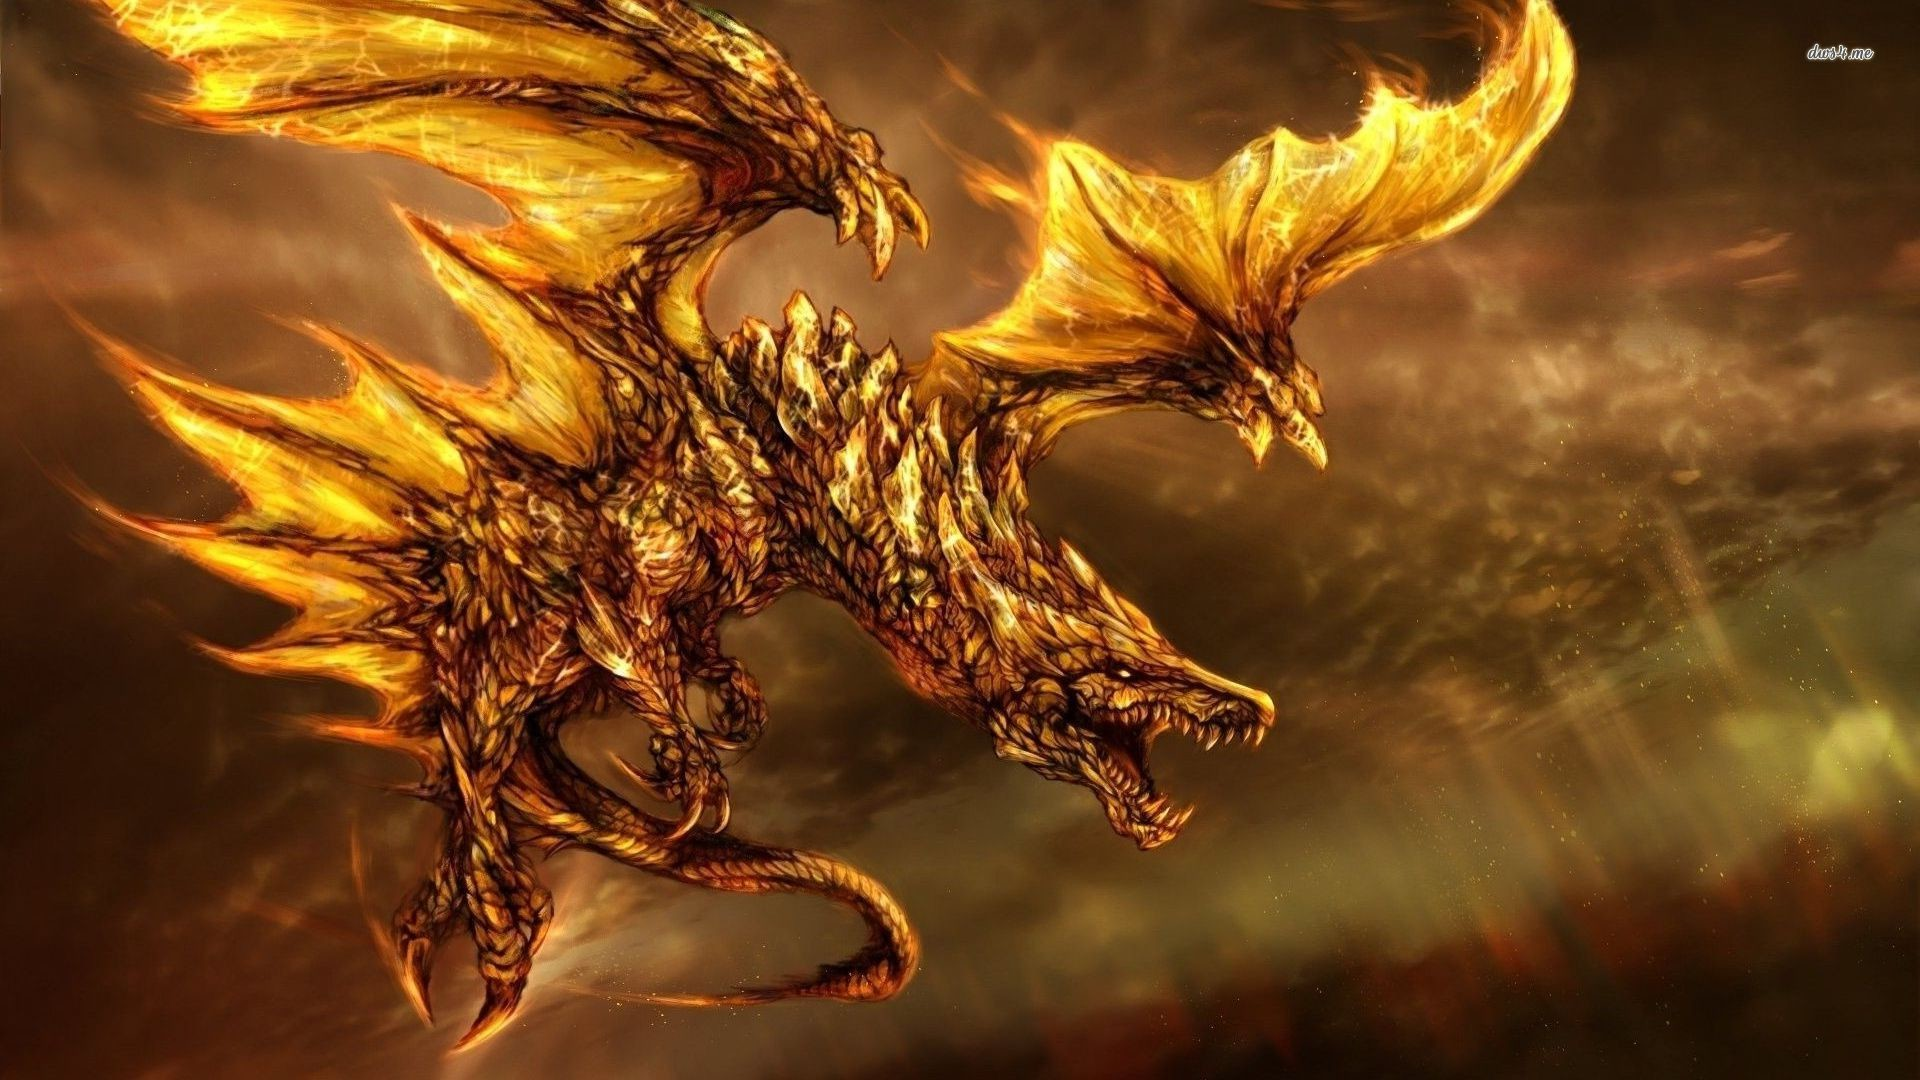 1920x1080 Images For High Resolution Dragon A Px